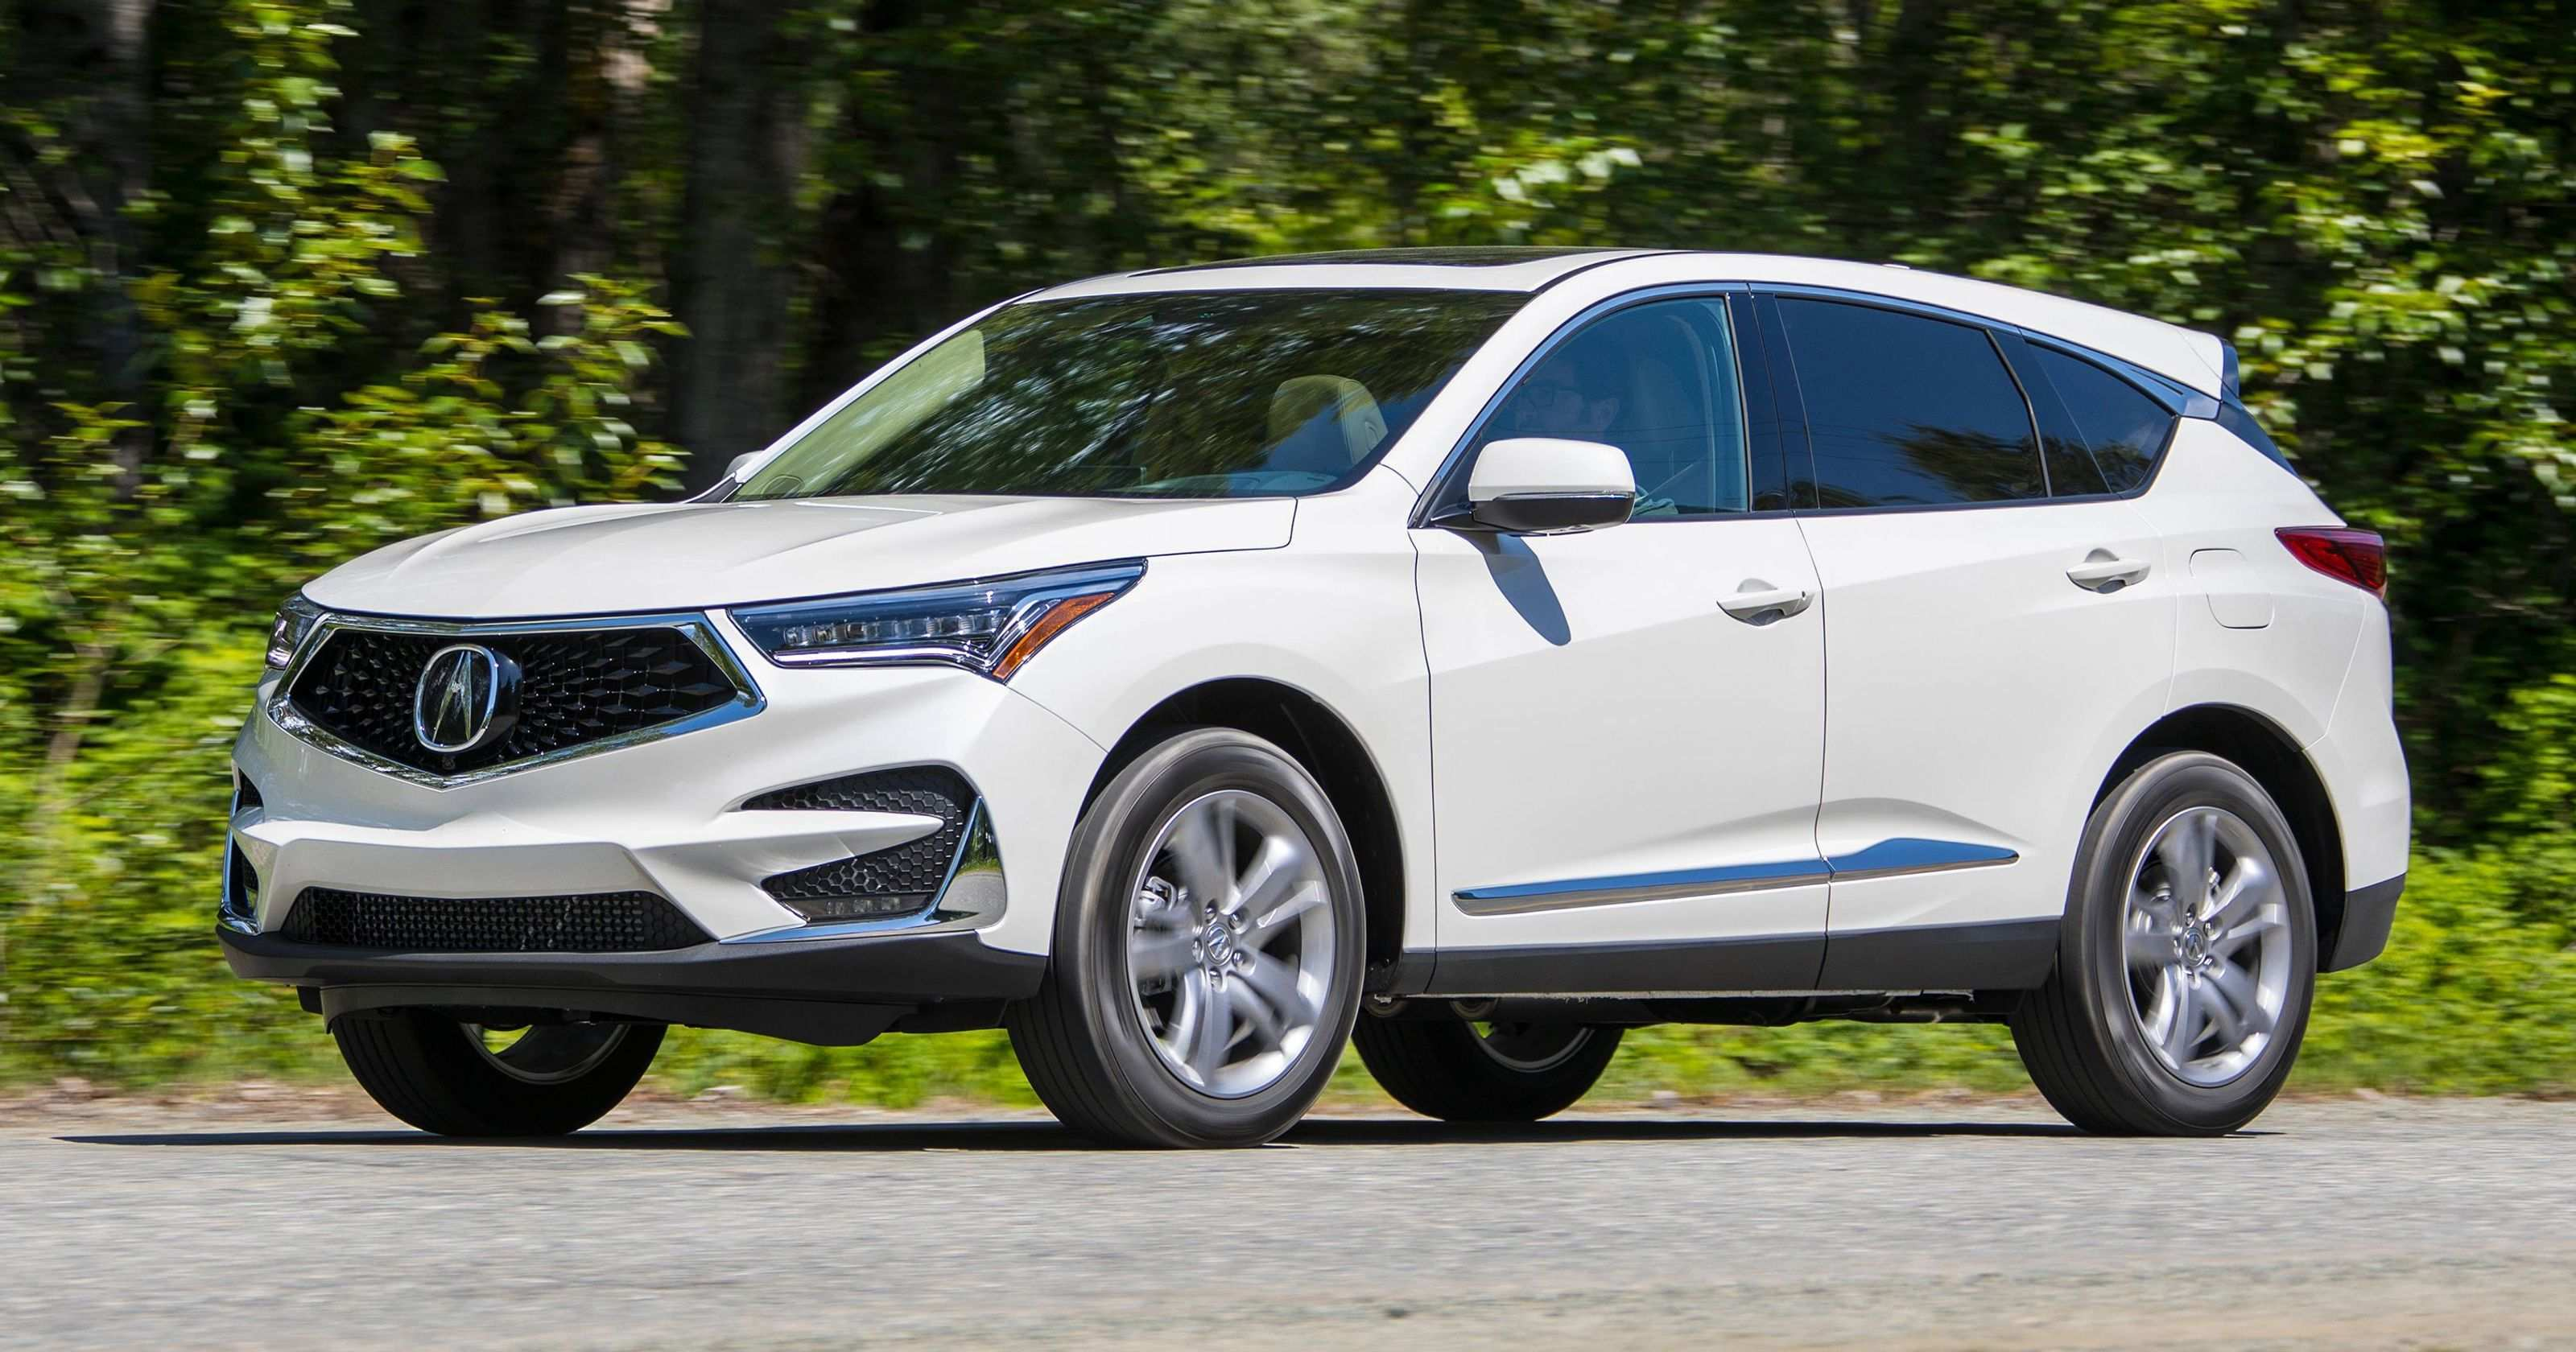 80 The 2019 Acura Rdx Preview Performance and New Engine for 2019 Acura Rdx Preview